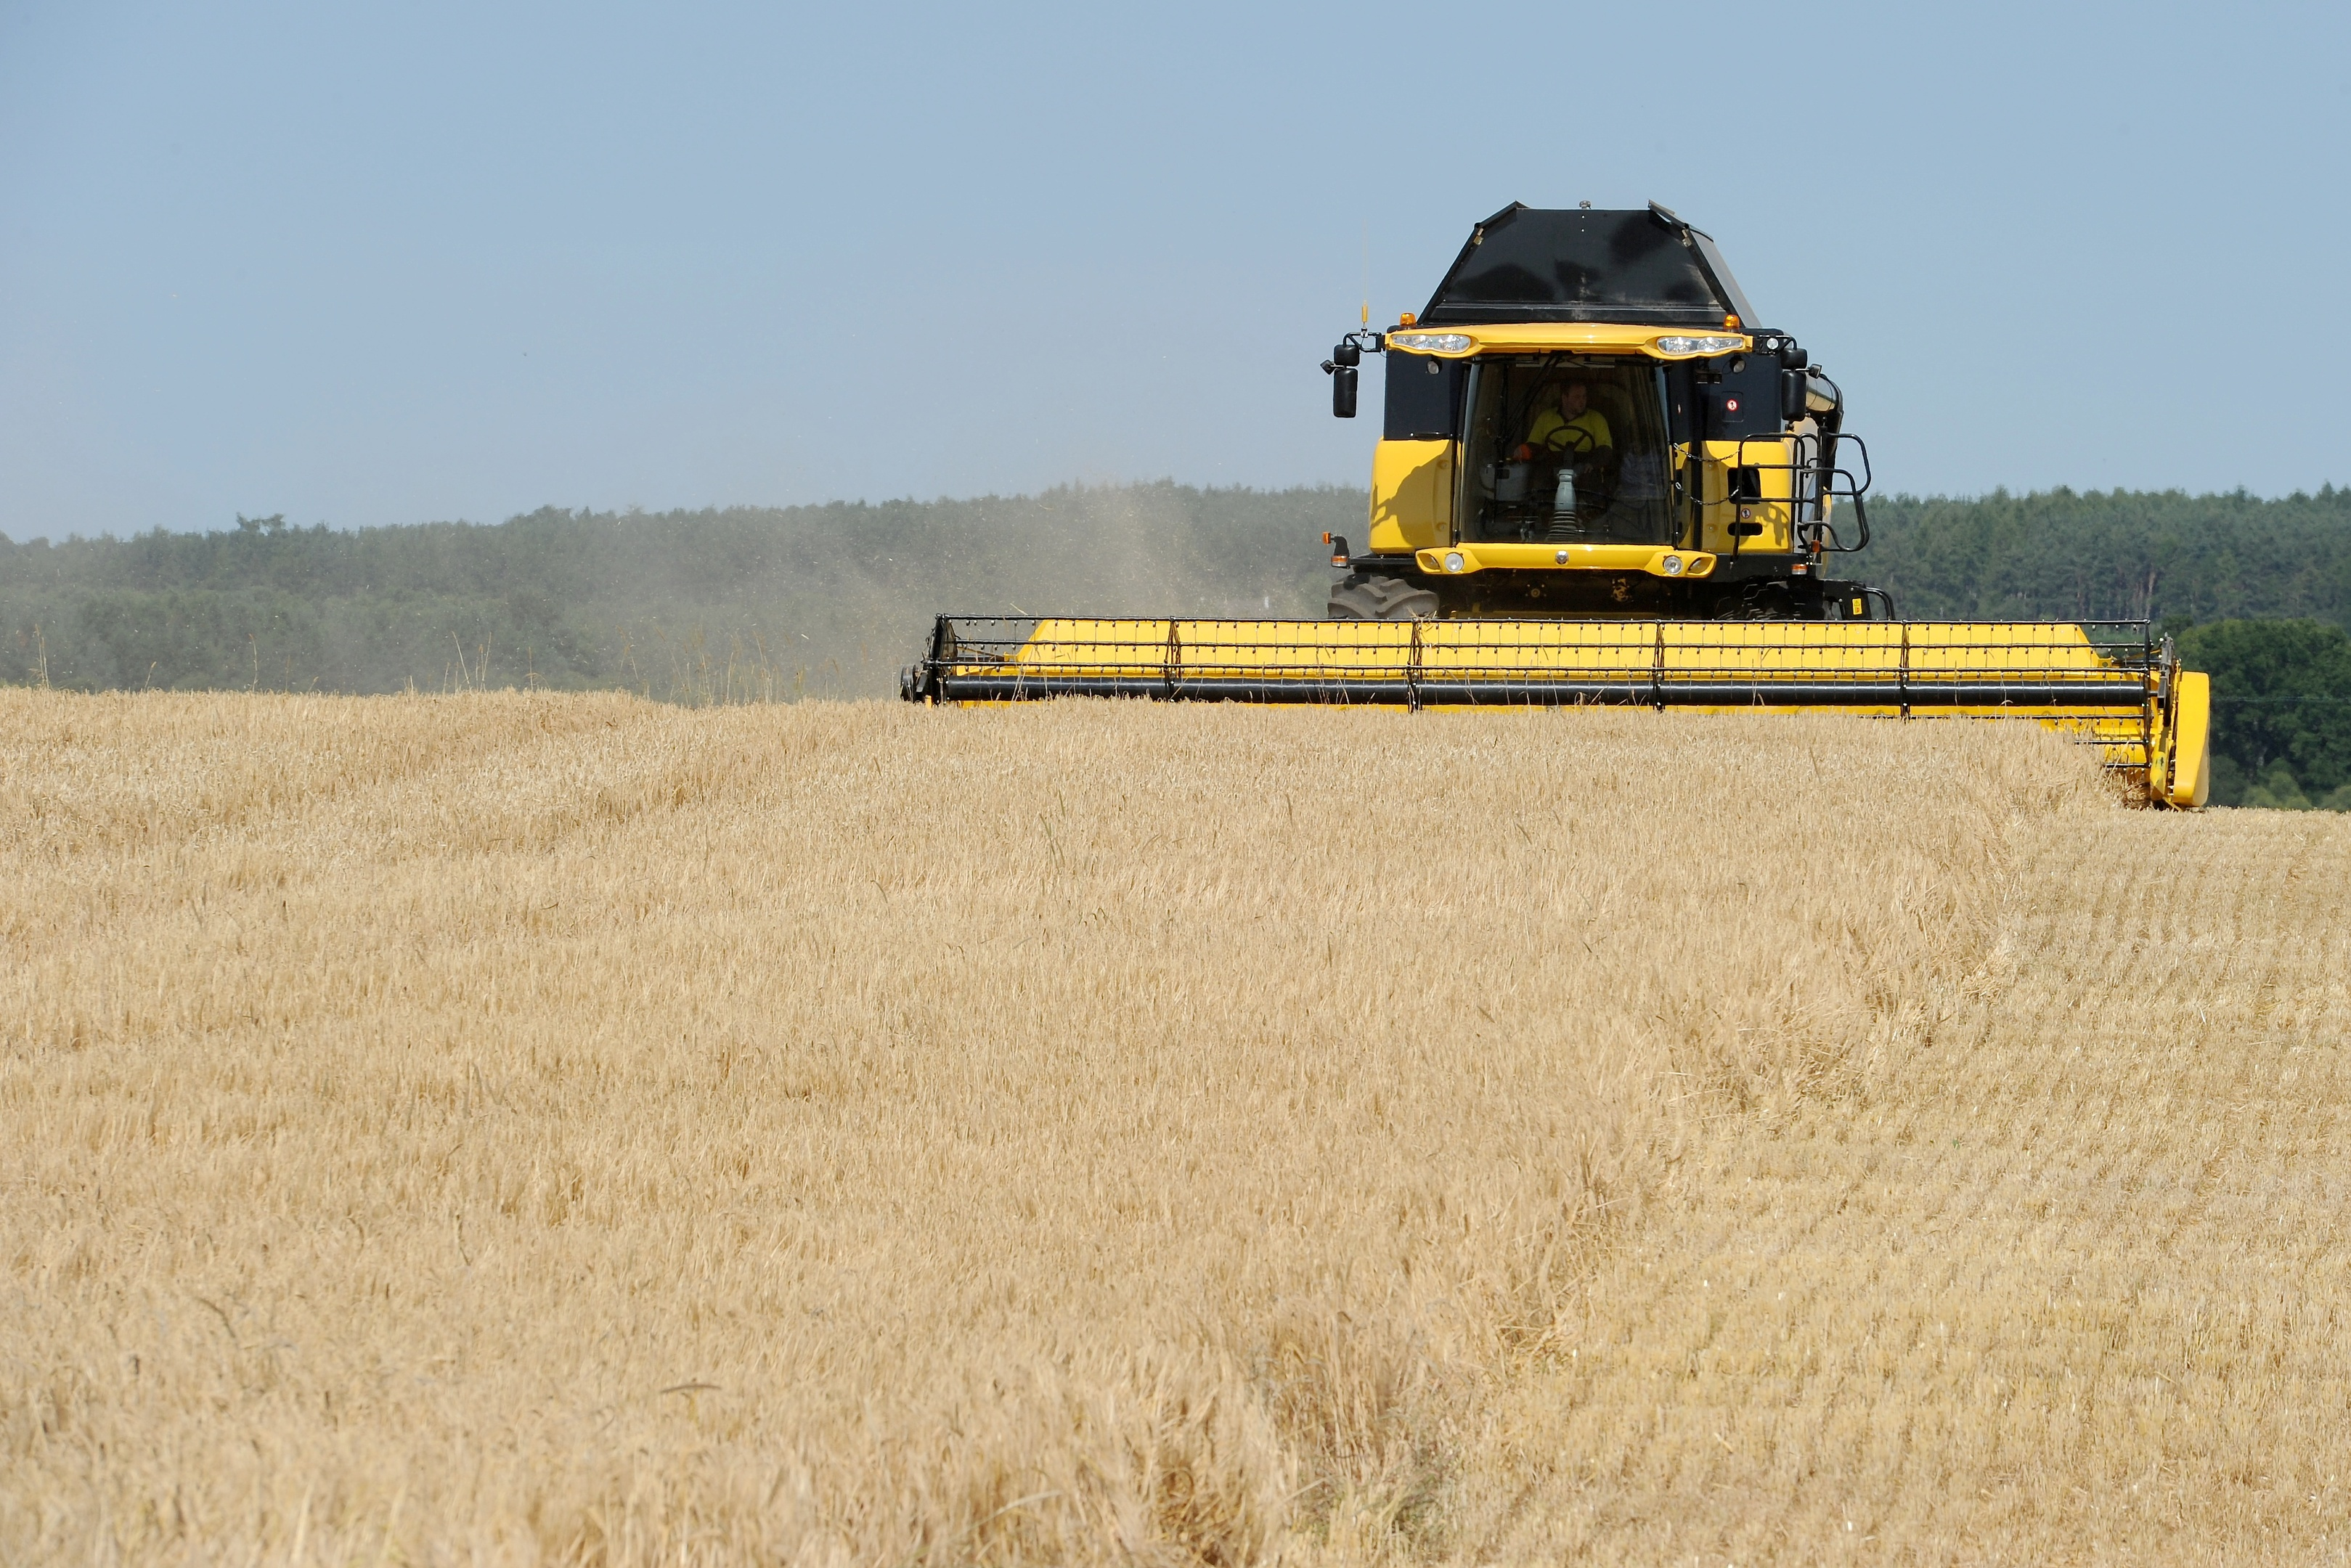 There was a 10% increase in the barley harvest last year and prices rose from £67m to £253m.